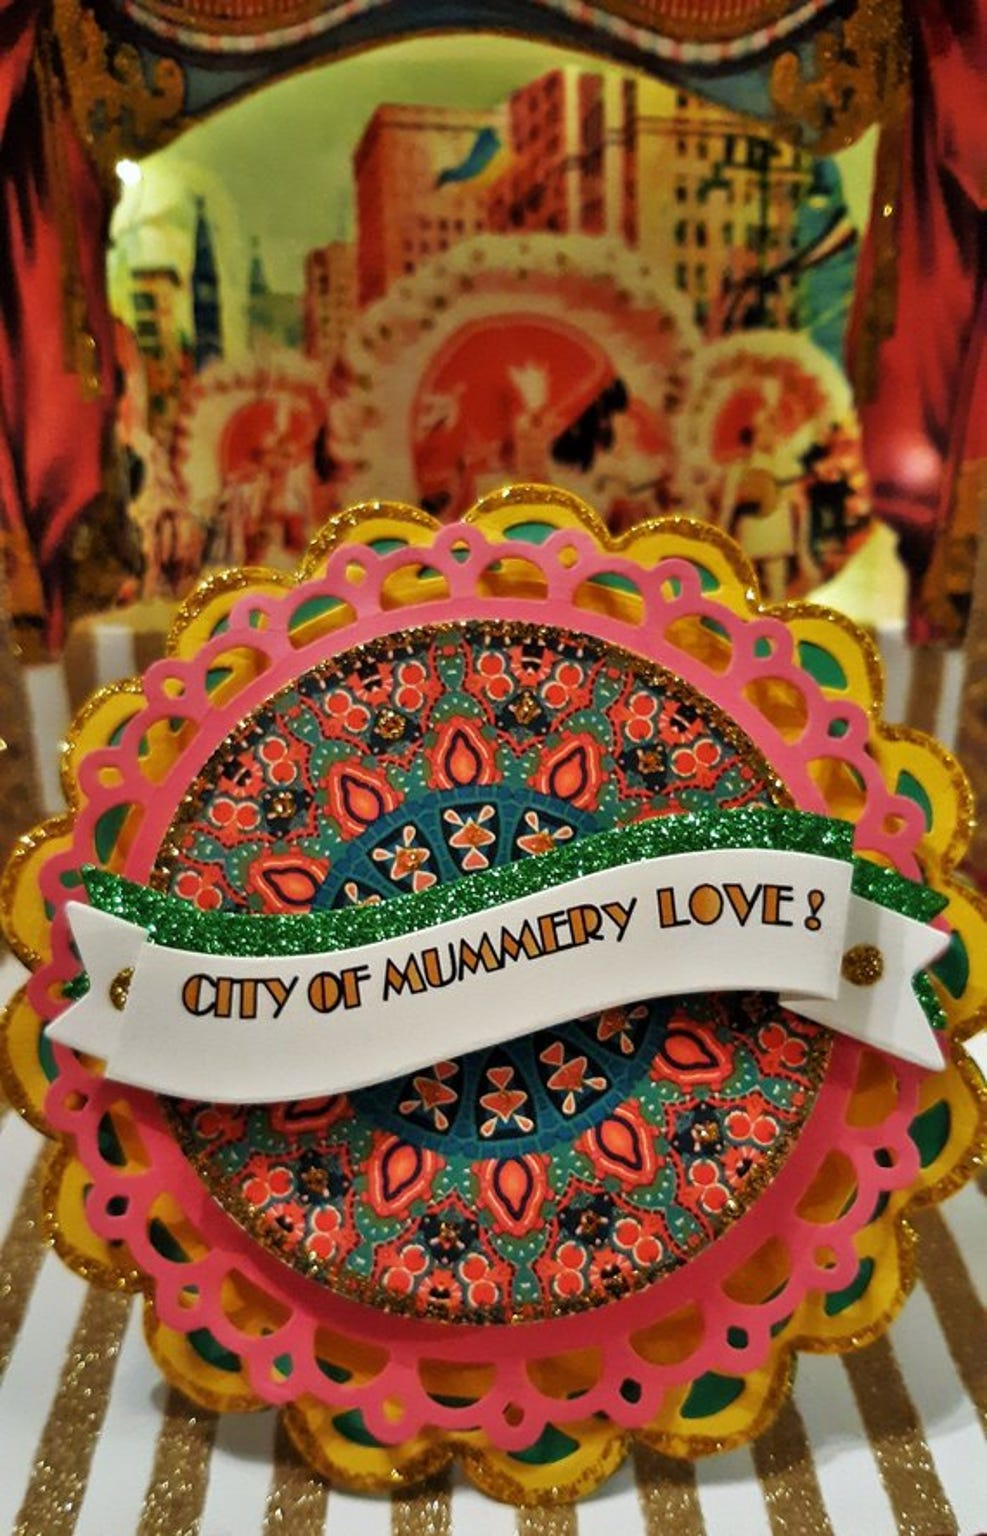 TheMummersStrut, a shop at Etsy.com, creates noisemaker/ornaments for the Mummers Parade.